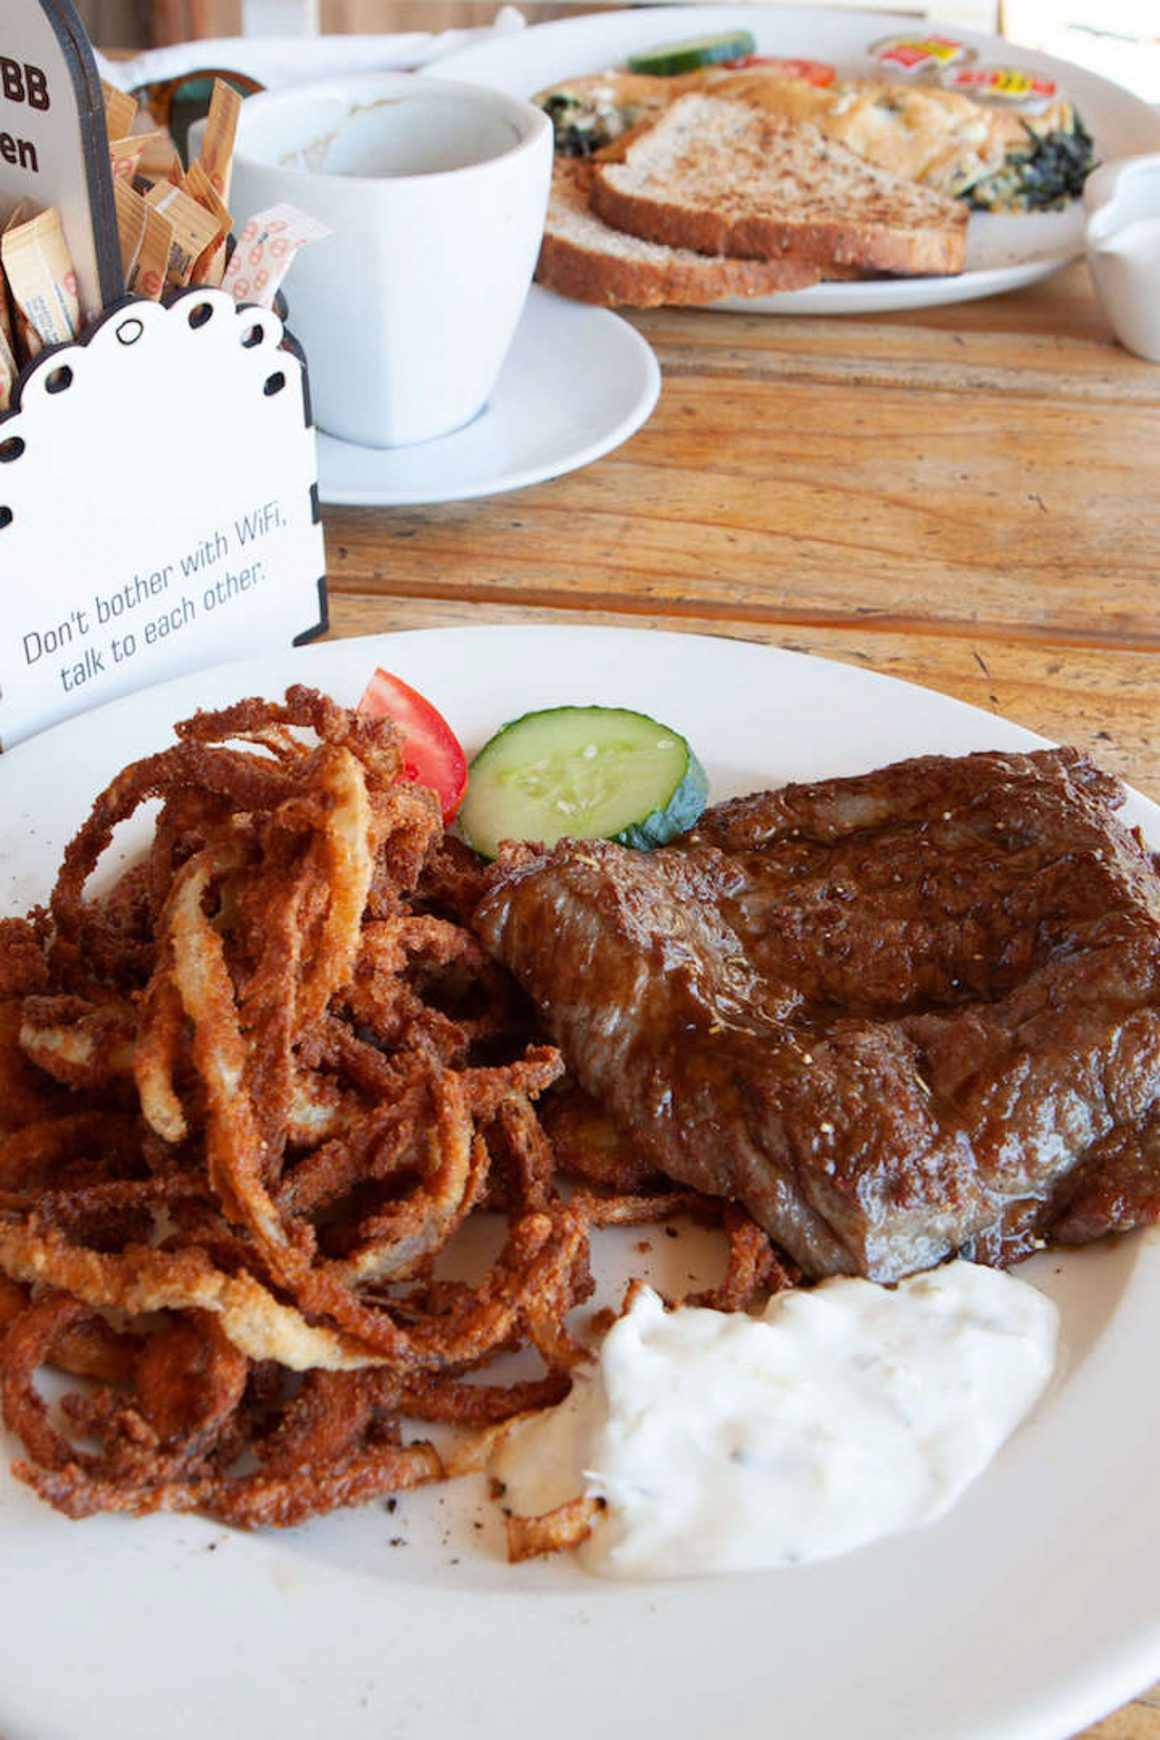 A hearty zebra steak and onion rings for lunch enroute to Etosha National Park